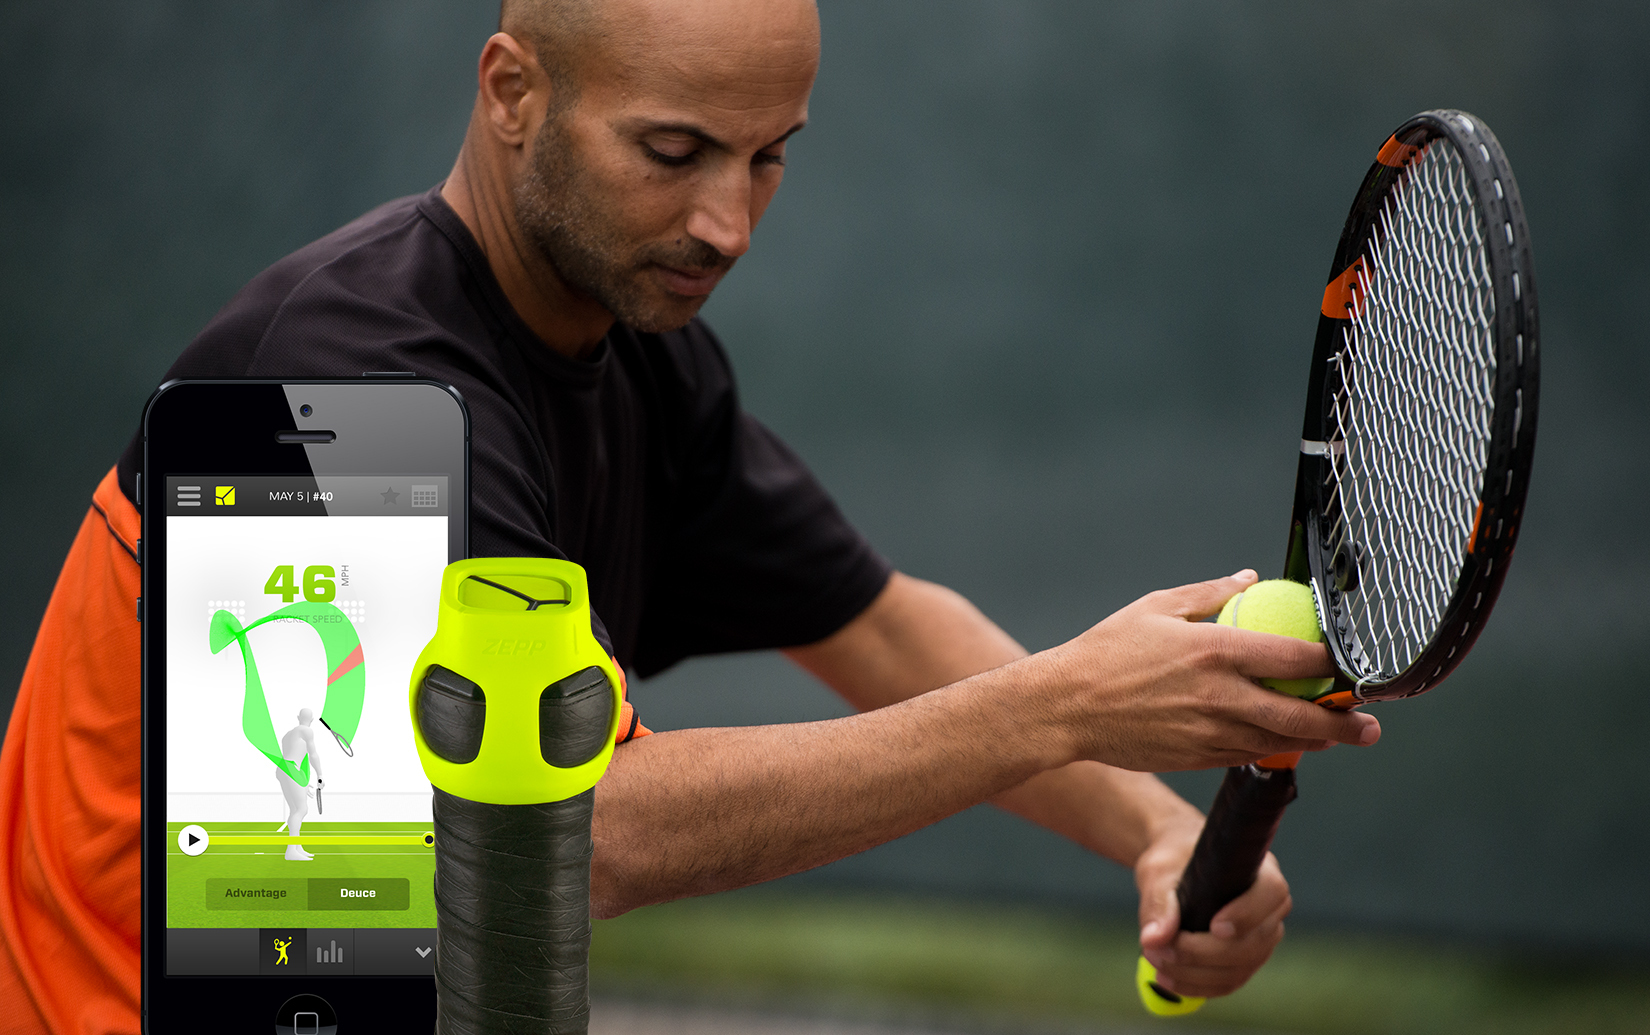 Simply attach the Zepp™ multi-sport sensor to the handle of any racket, serve a ball and instantly see 3D results on your smartphone or tablet (iPhone, iPad or Android device) when using new and improved Zepp Tennis™ app. The new app also measures important serve metrics such as racket speed, ball speed potential, spin, backswing time and impact time, which gives players and coaches a new more scientific way to evaluate performance on the court. Additionally, the new sweet spot feature shows you where you make contact with the ball on the racket strings — a key element in gauging your contact quality and consistency. (Photo: Business Wire)